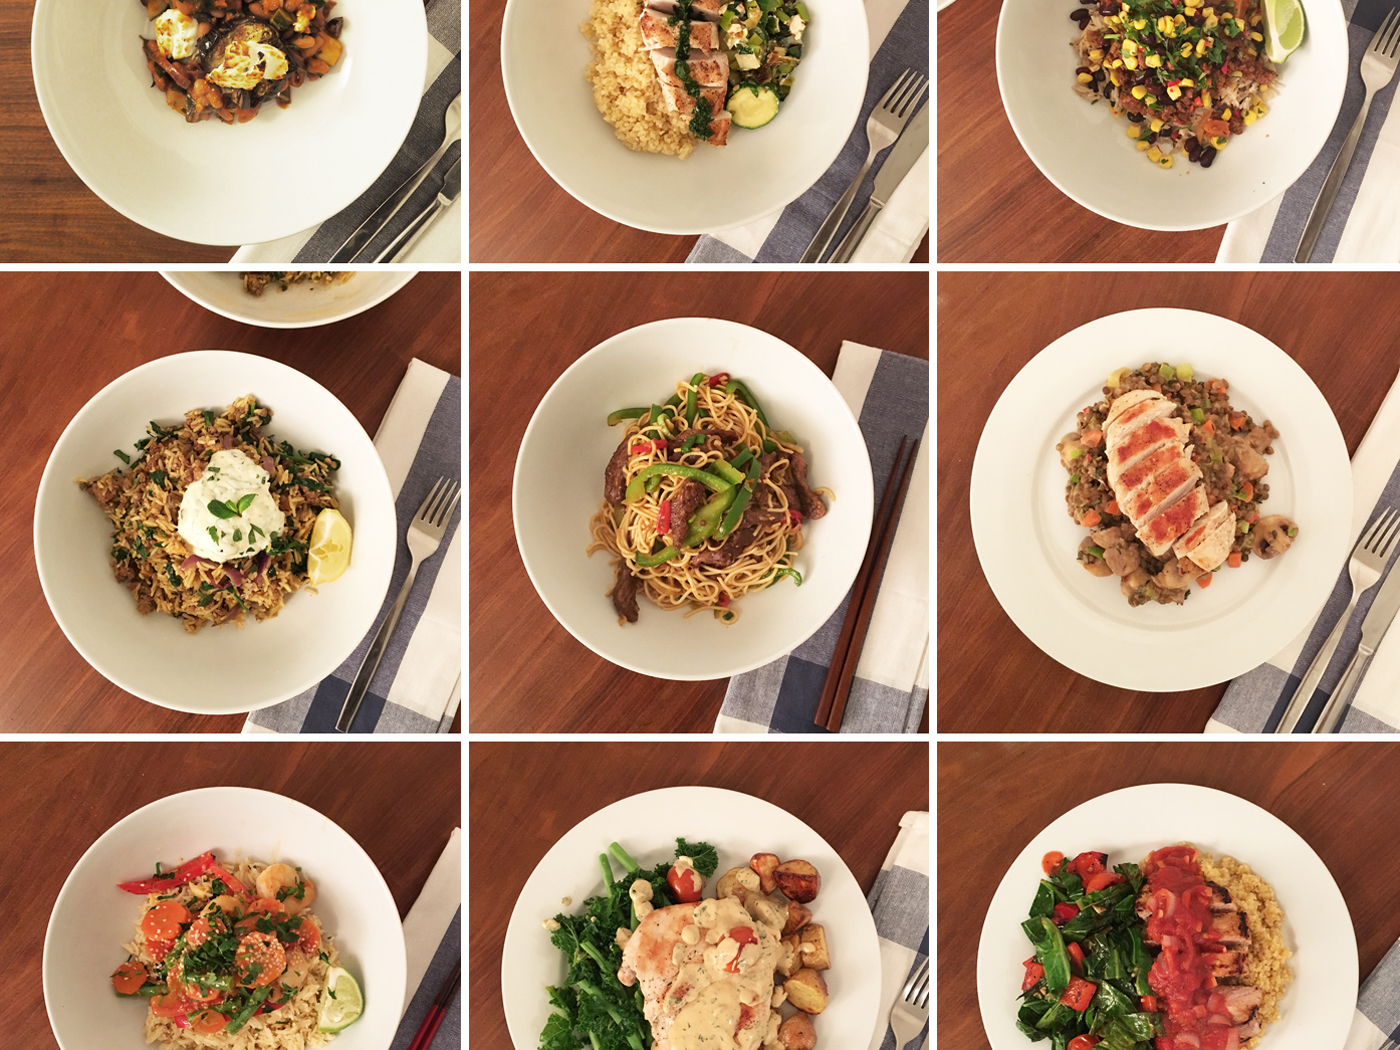 Meal Kit Delivery Service Hellofresh Free Offer April